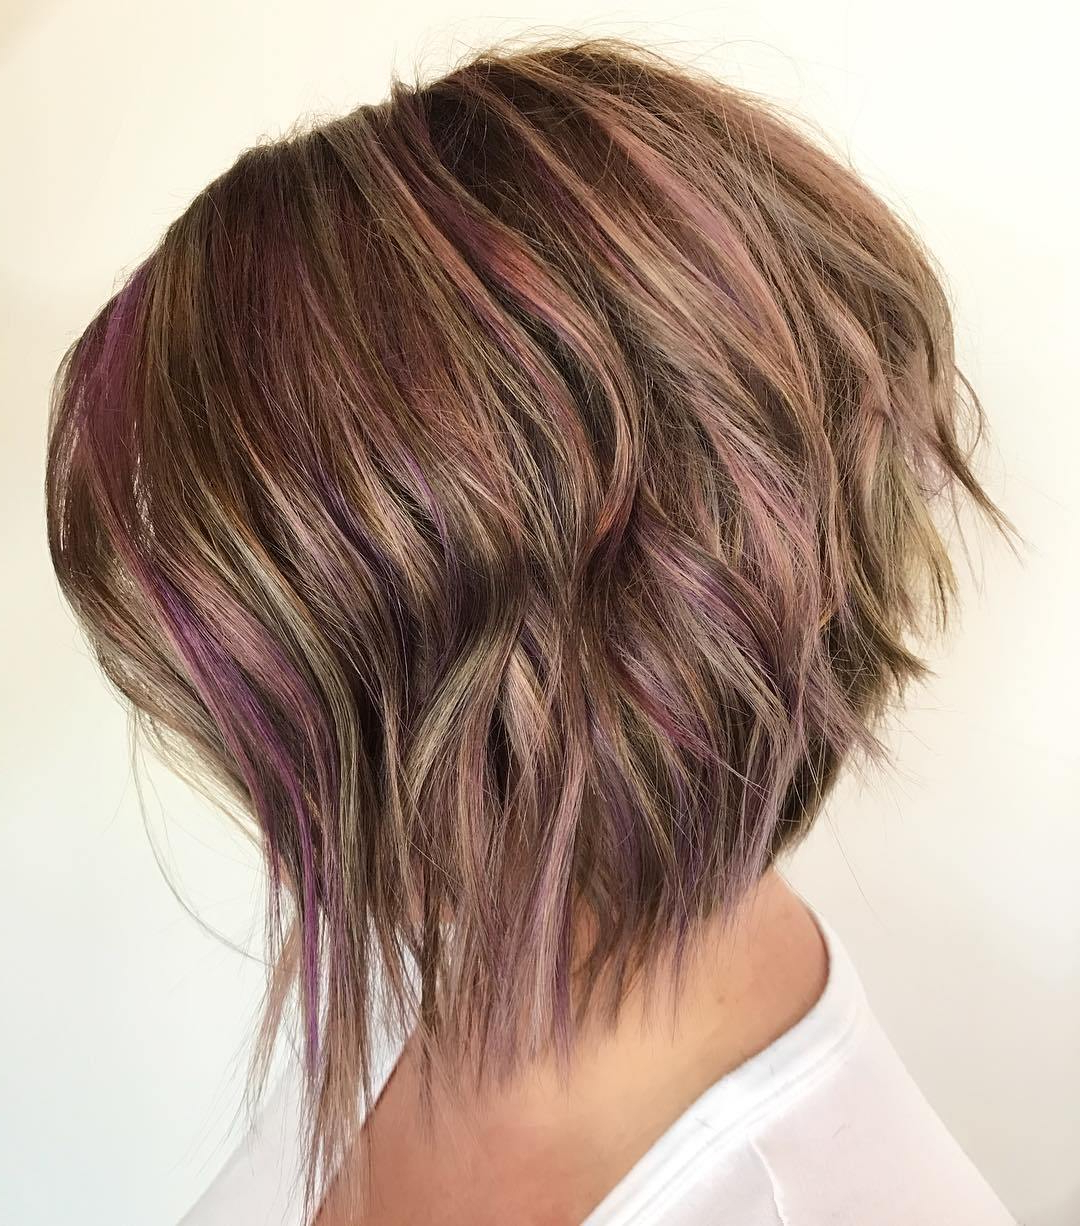 50 Screenshot Worthy Short Layered Hairstyles – Hair Adviser Regarding Short Shag Haircuts With Purple Highlights (View 9 of 20)